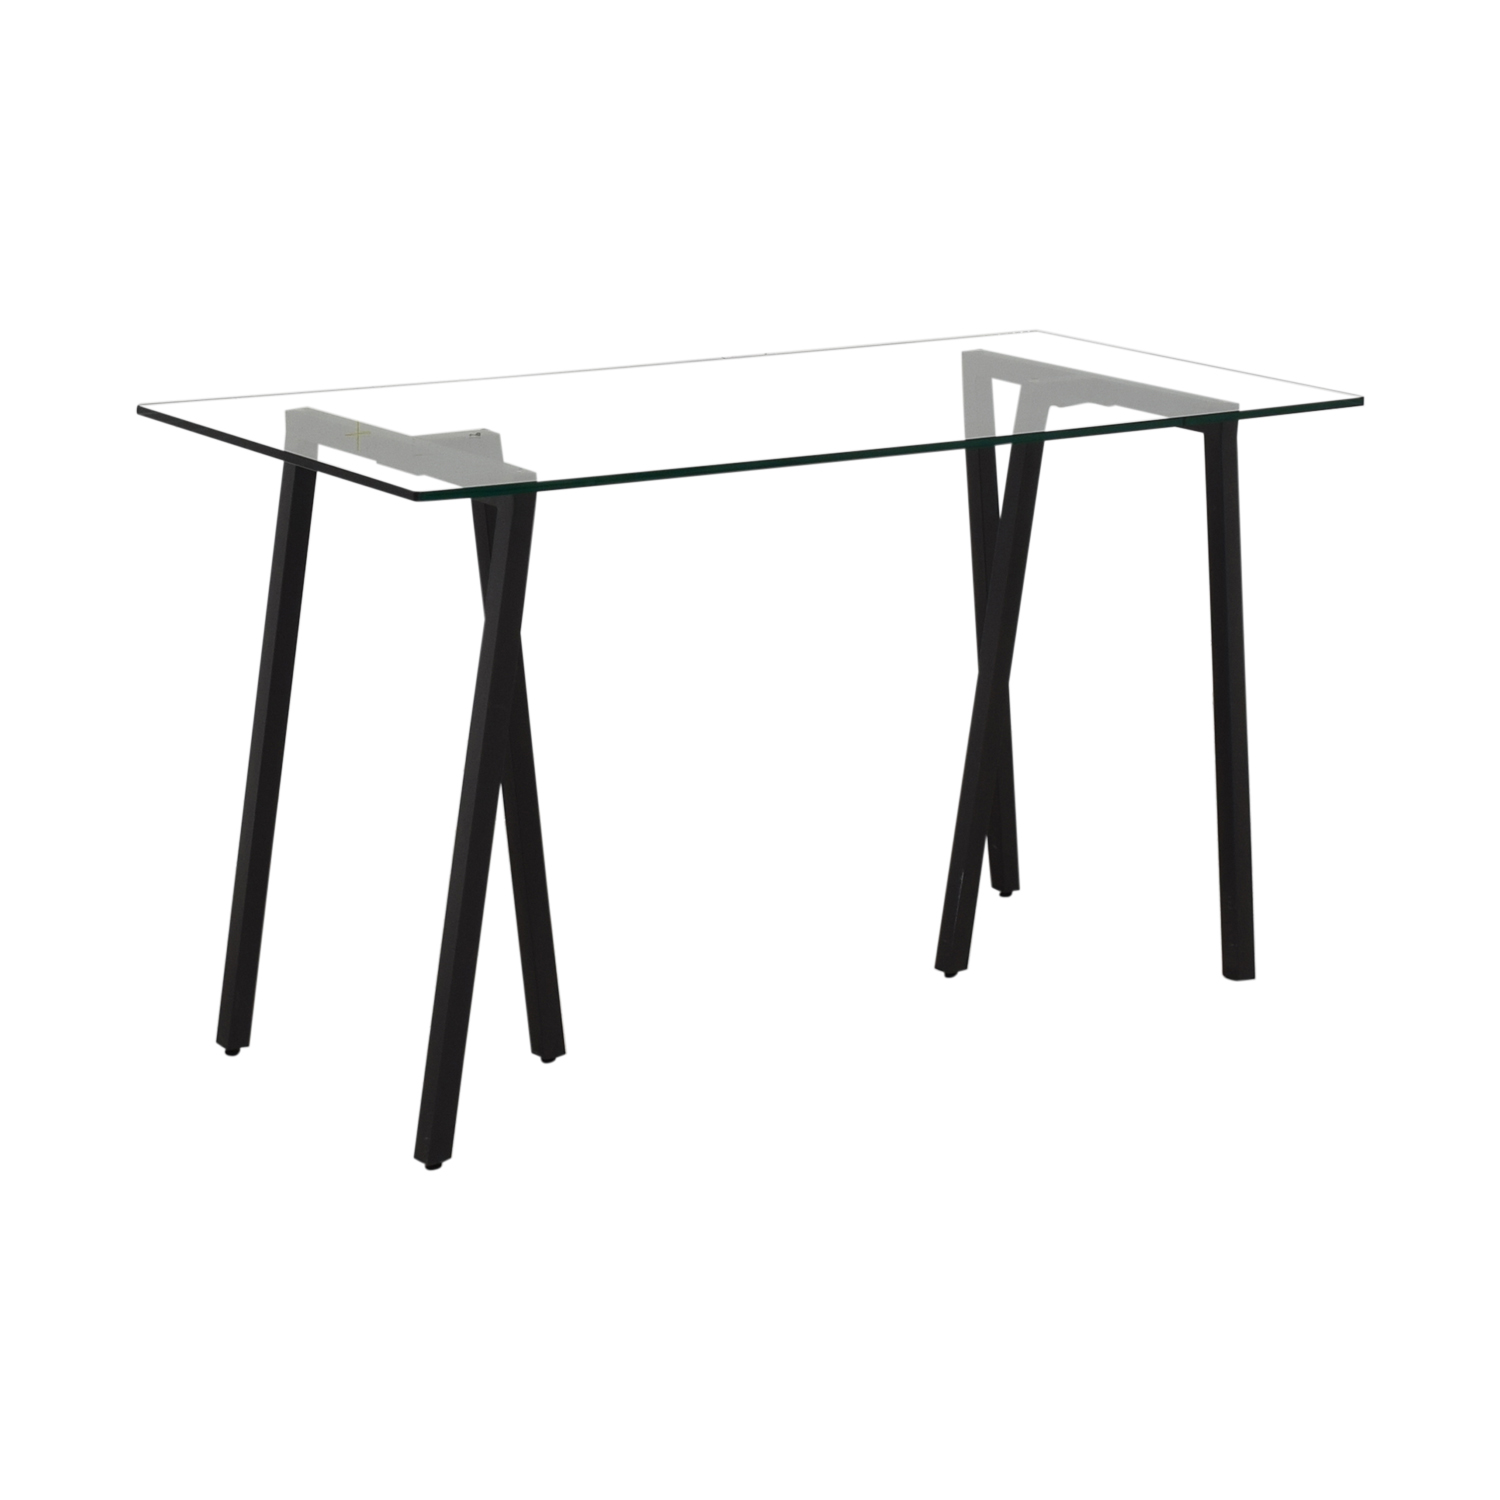 West Elm West Elm Glass Desk used